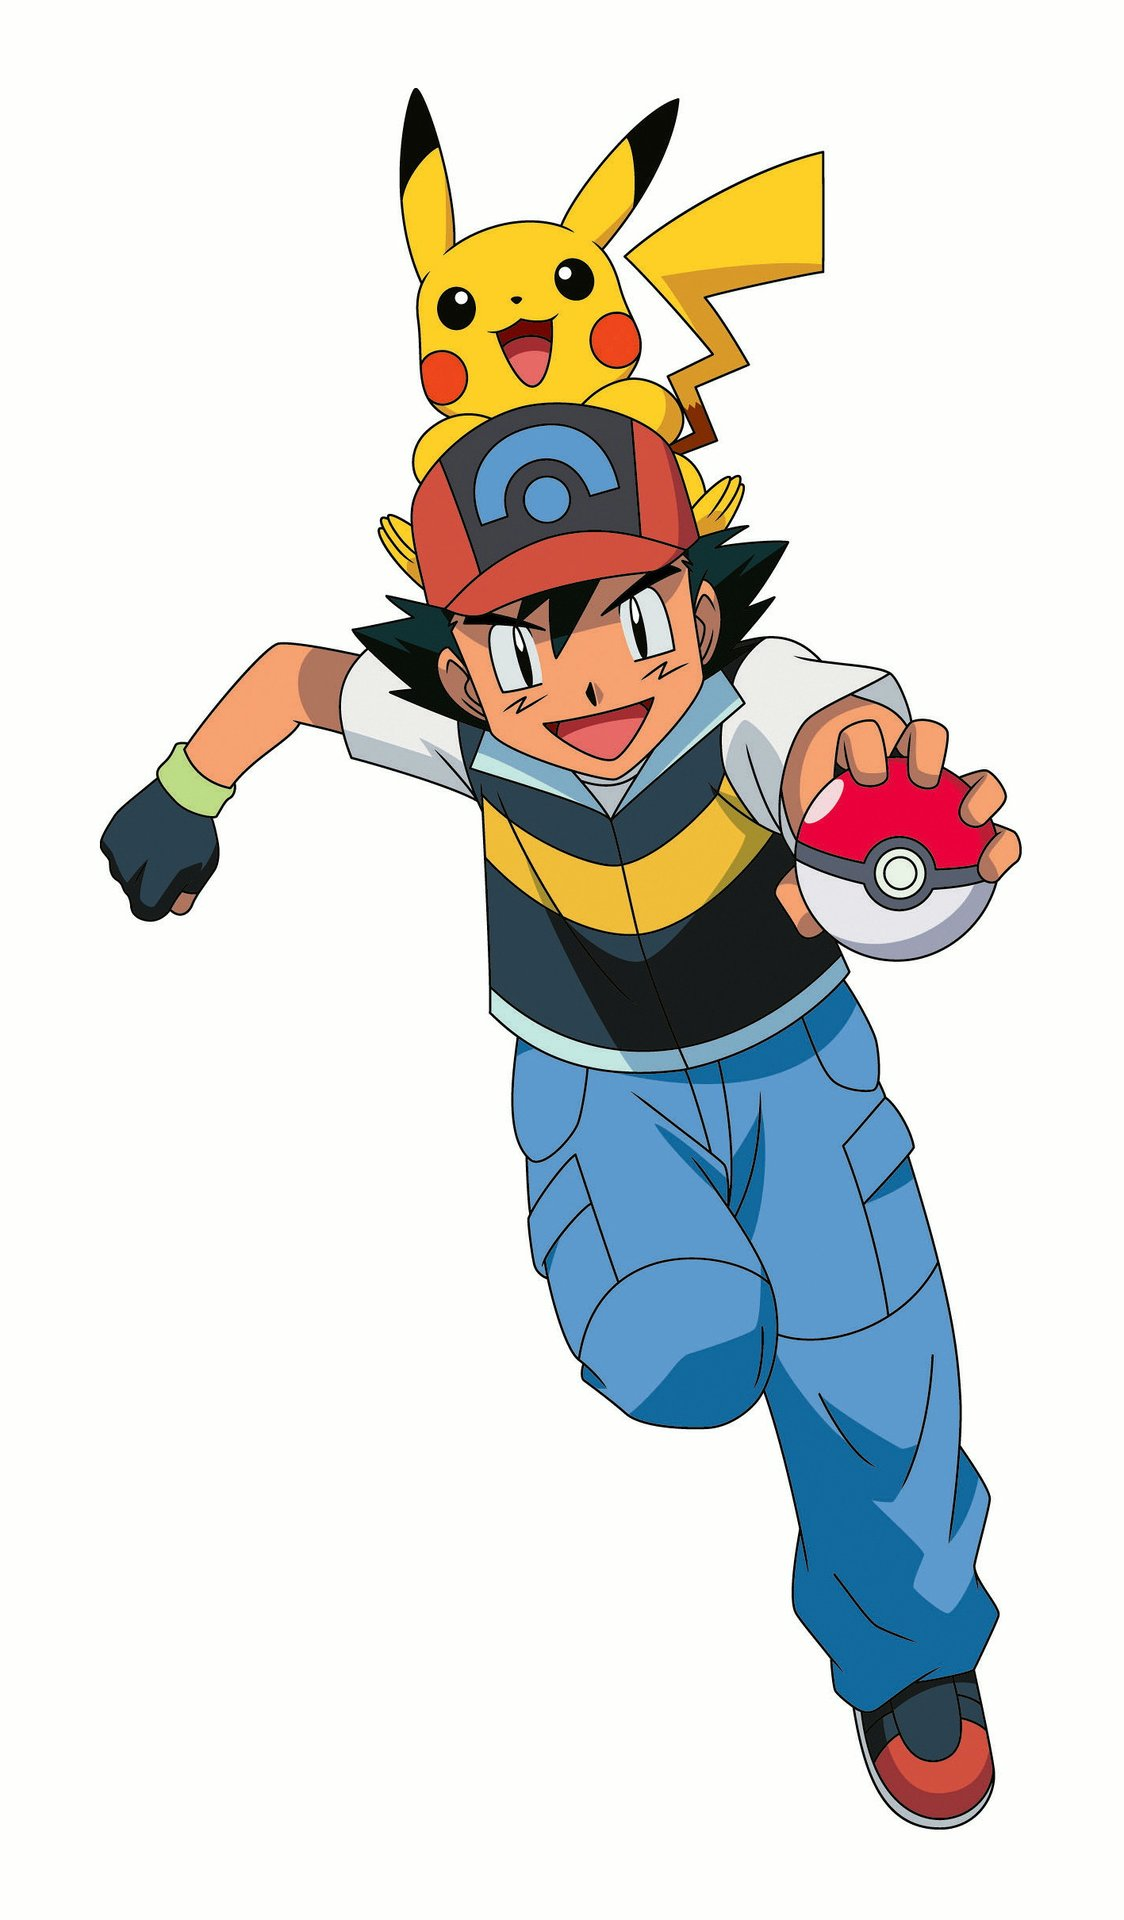 Ash Ketchum Pokmon Wiki FANDOM powered by Wikia